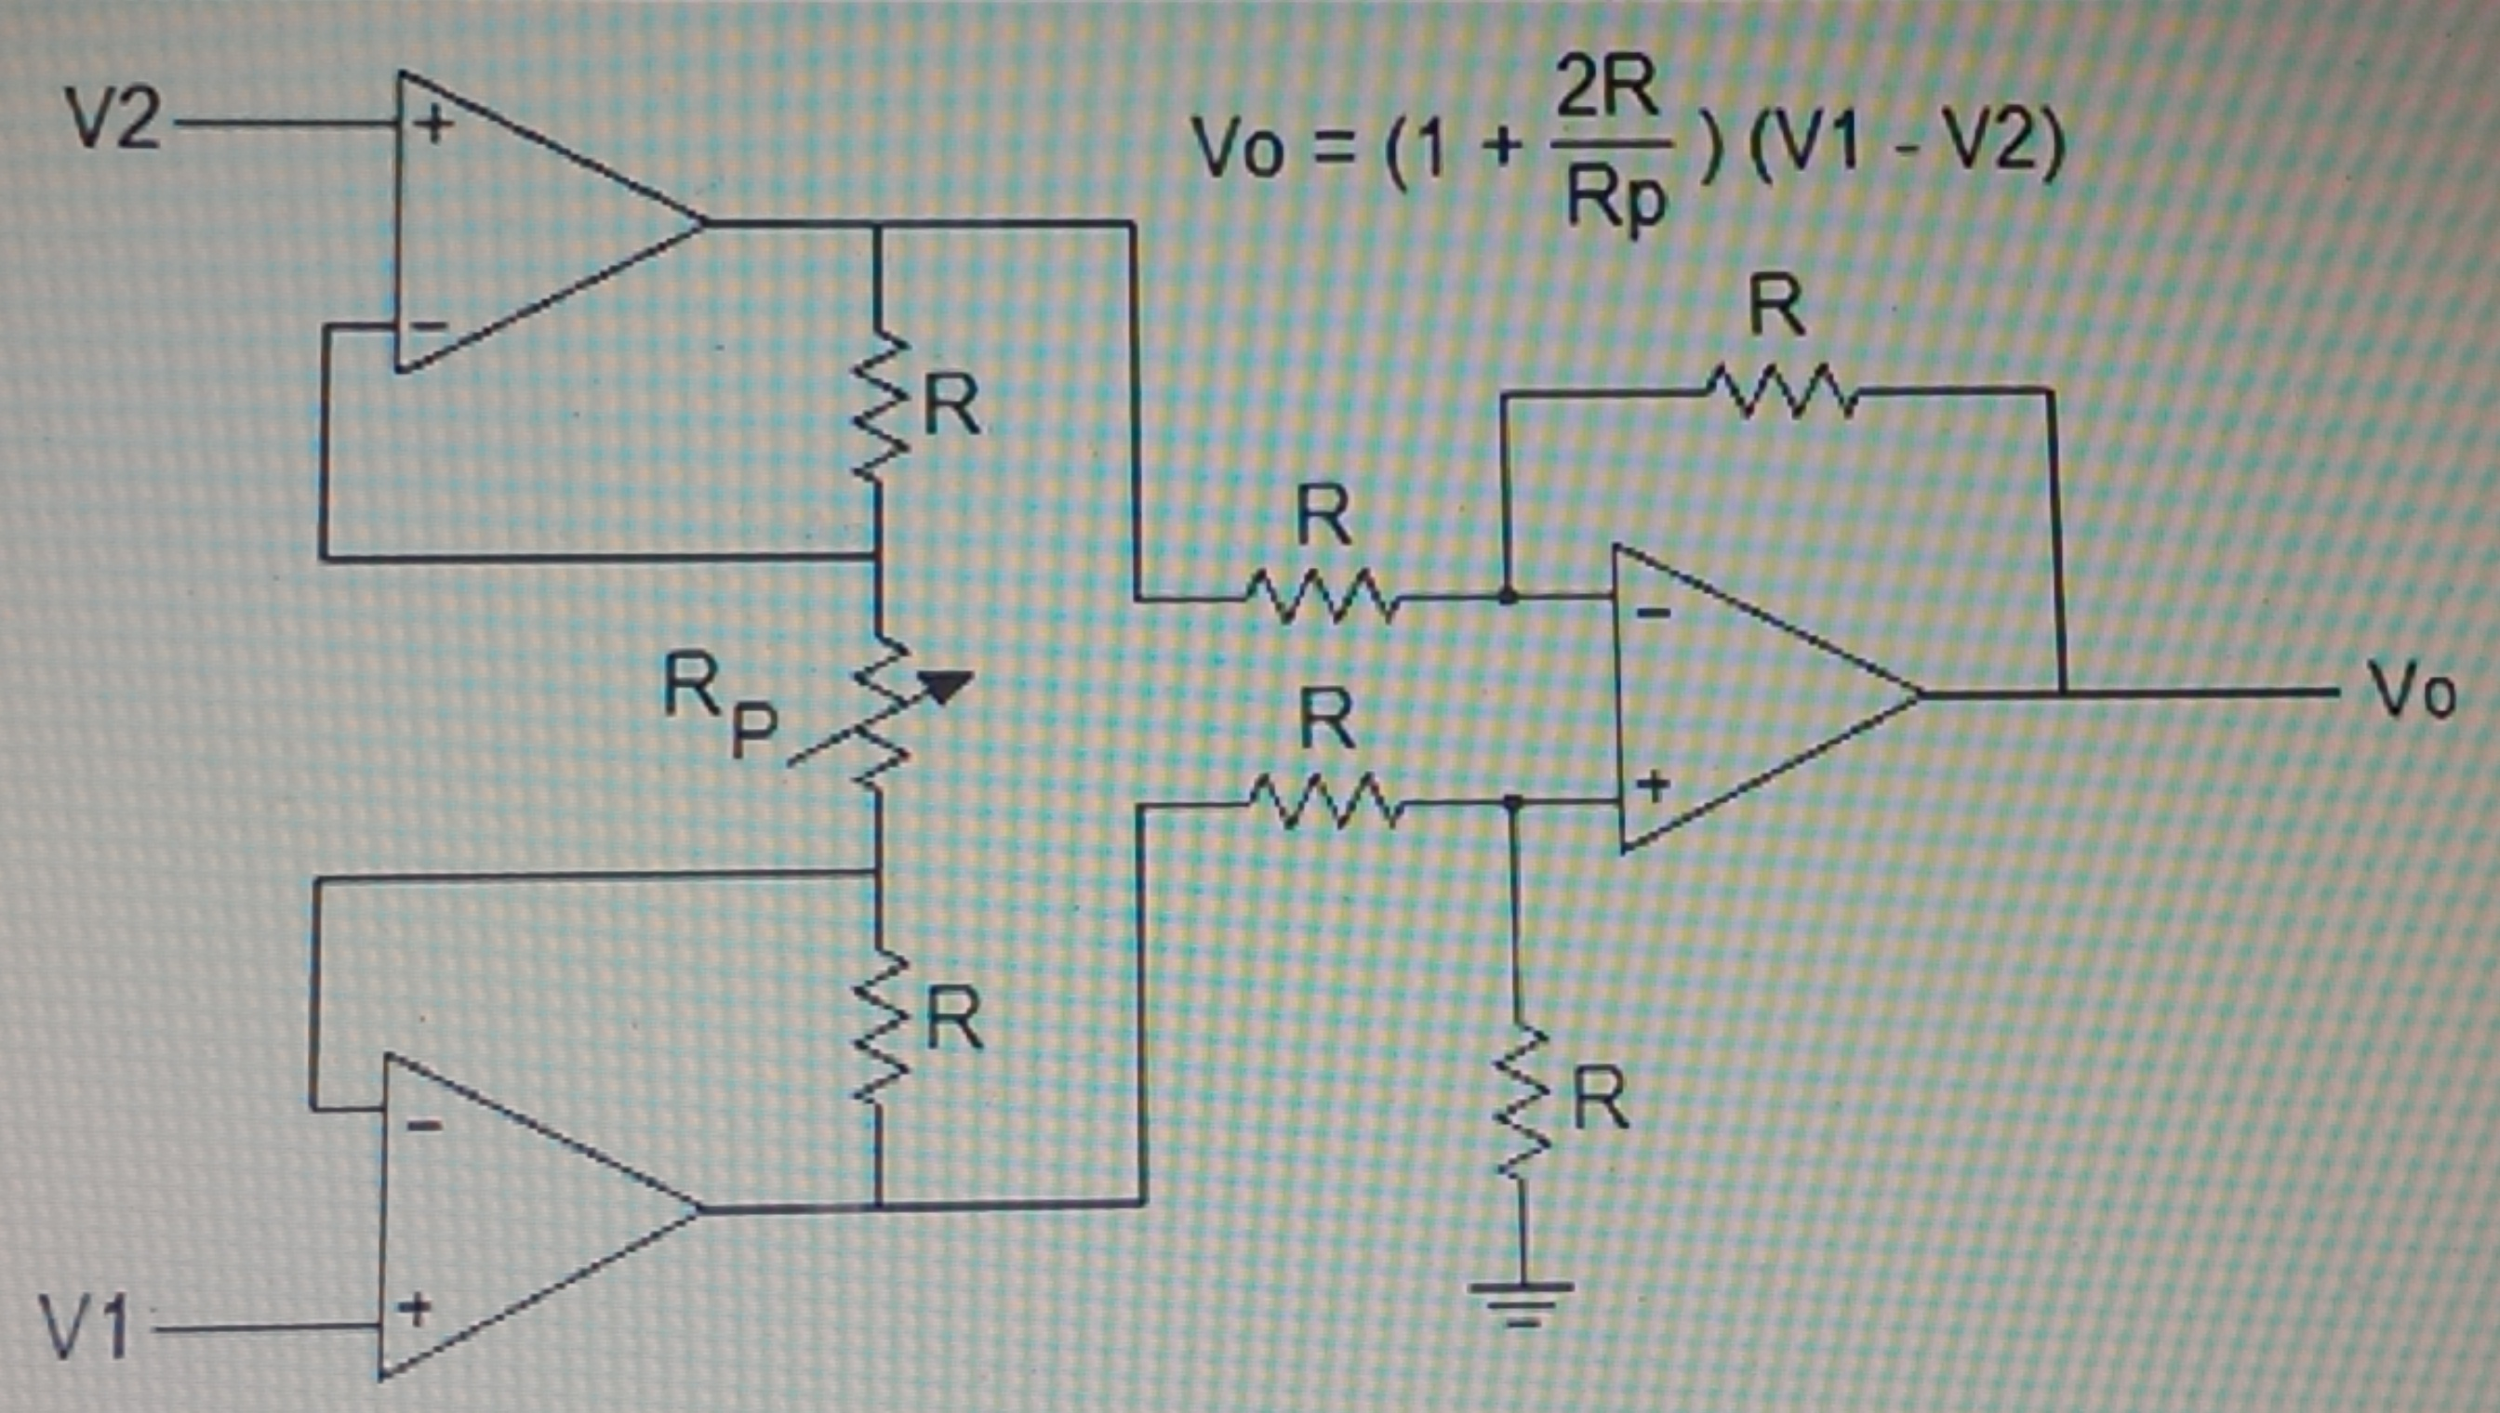 In the instrumentation amplifier shown below, R